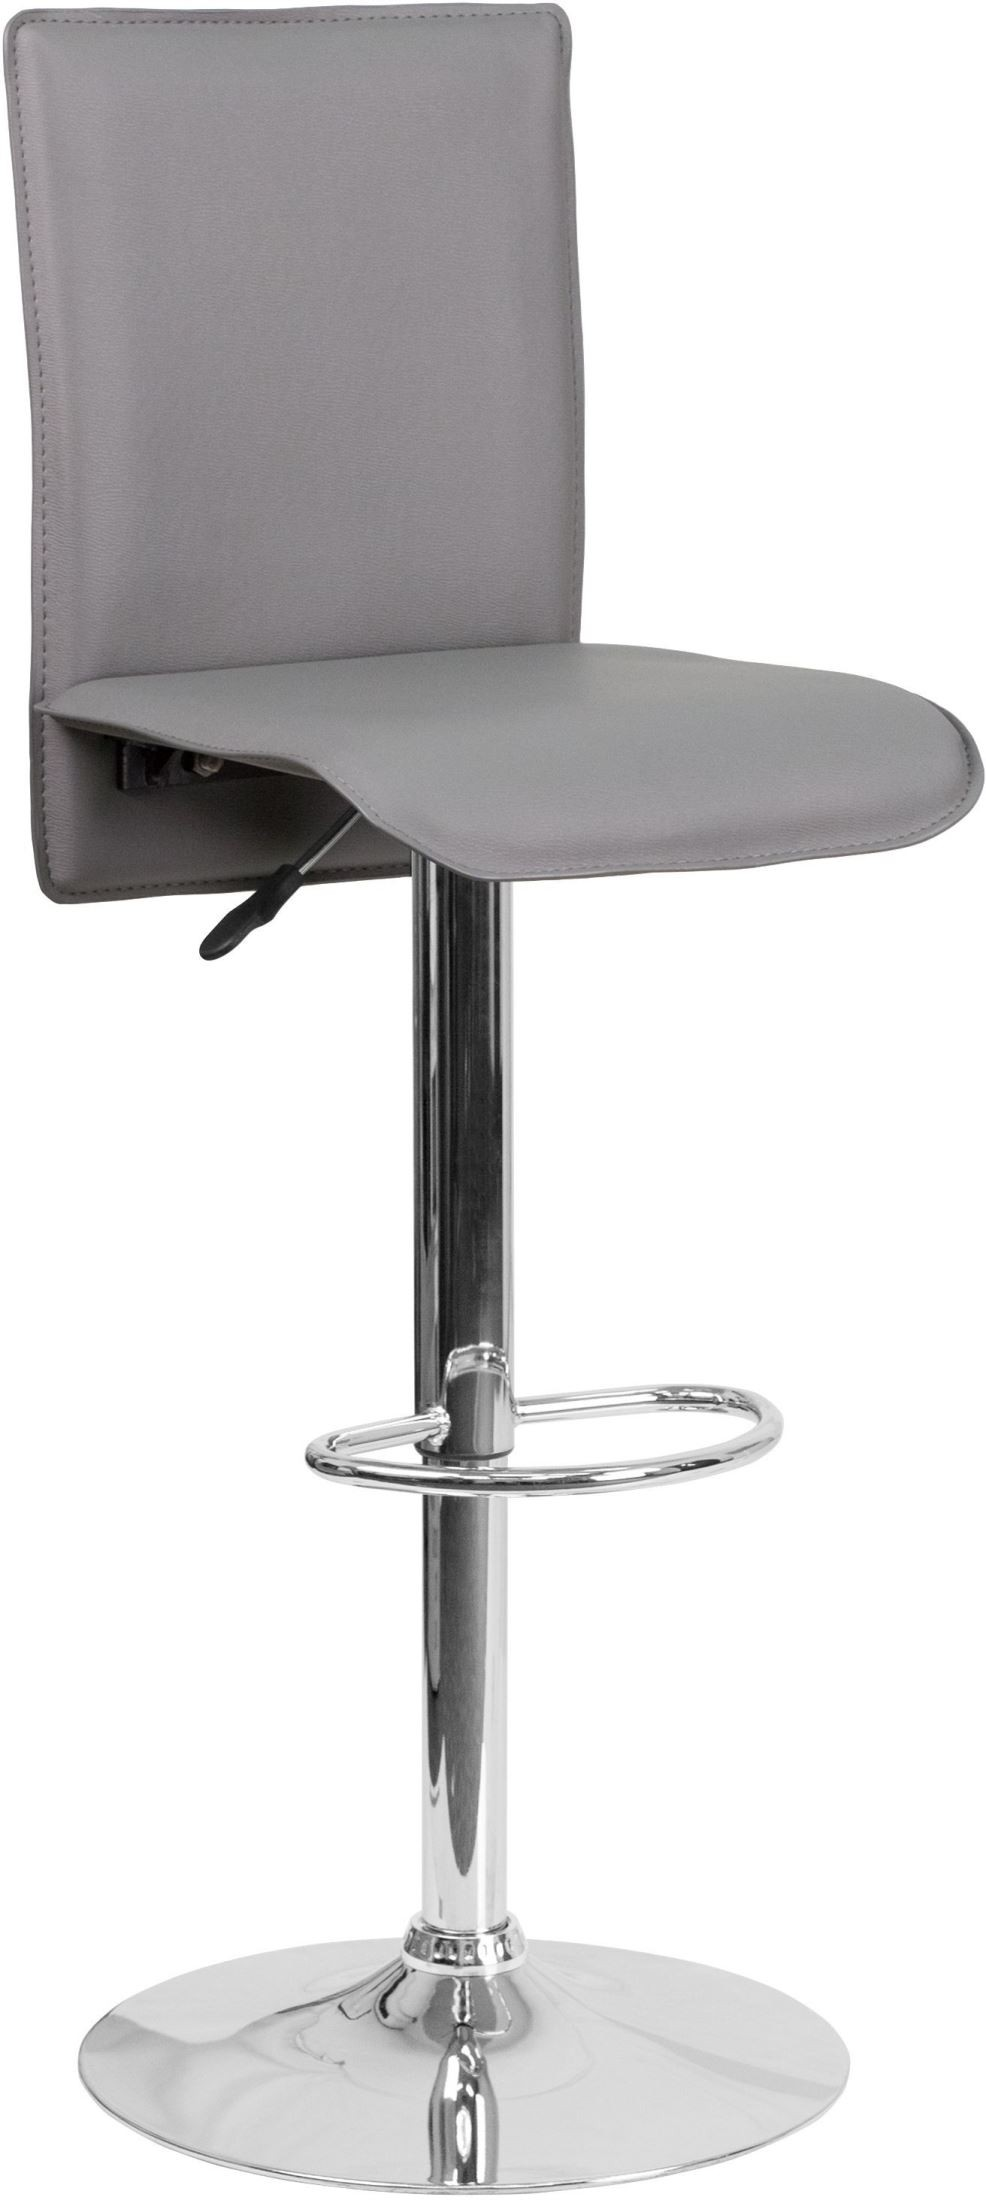 Mid Back Swivel Gray Vinyl Adjustable Height Bar Stool CH  : ch tc3 1206 gy gg from colemanfurniture.com size 986 x 2200 jpeg 155kB